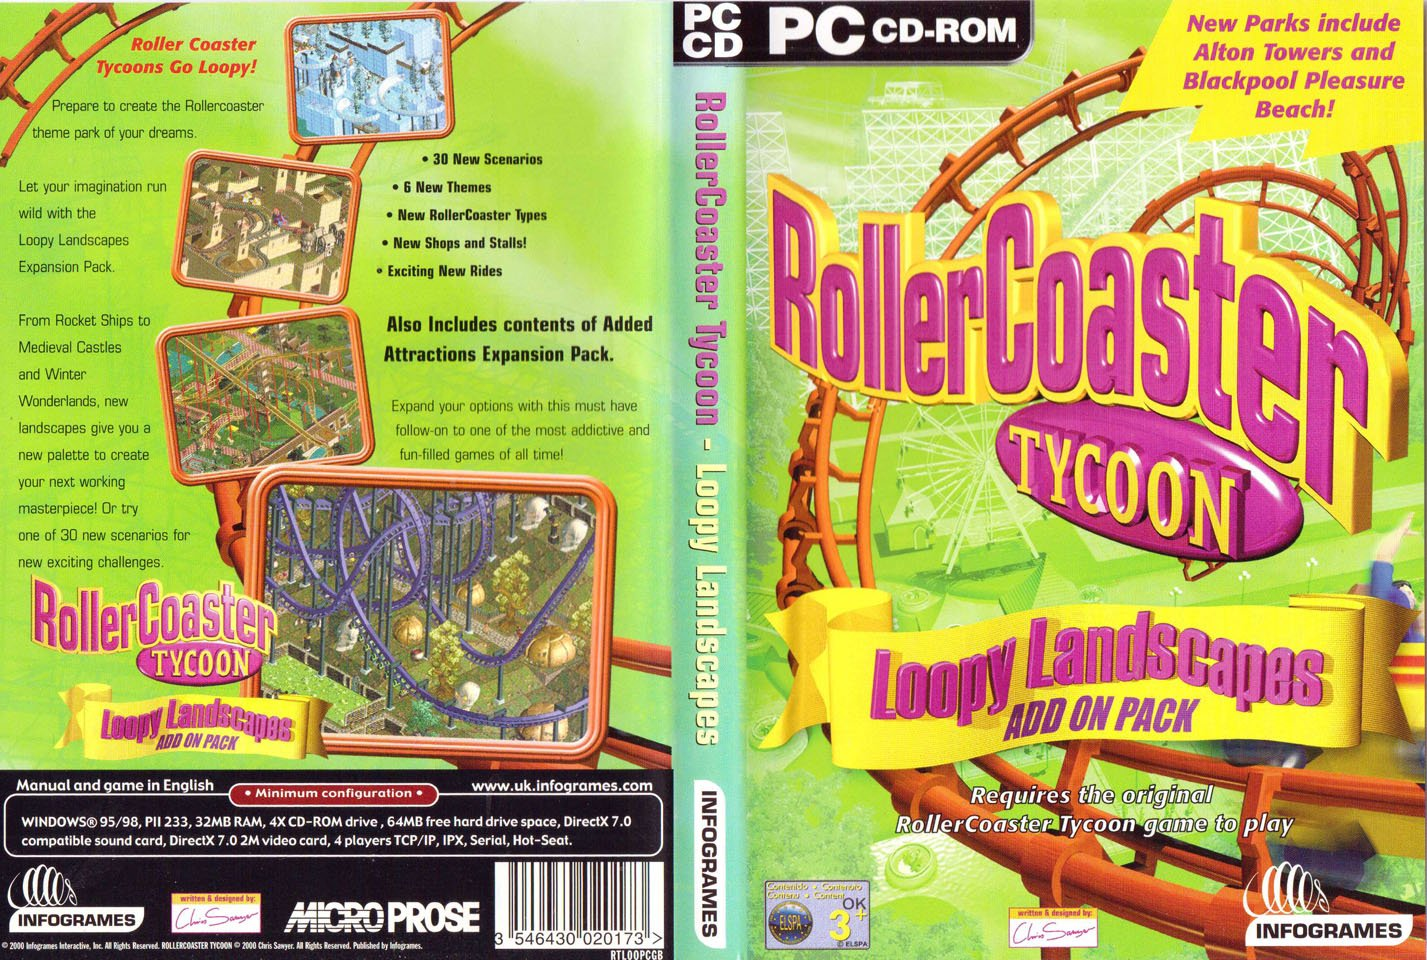 Roller Coaster Tycoon - Loopy Landscapes Add-On Pack (PC